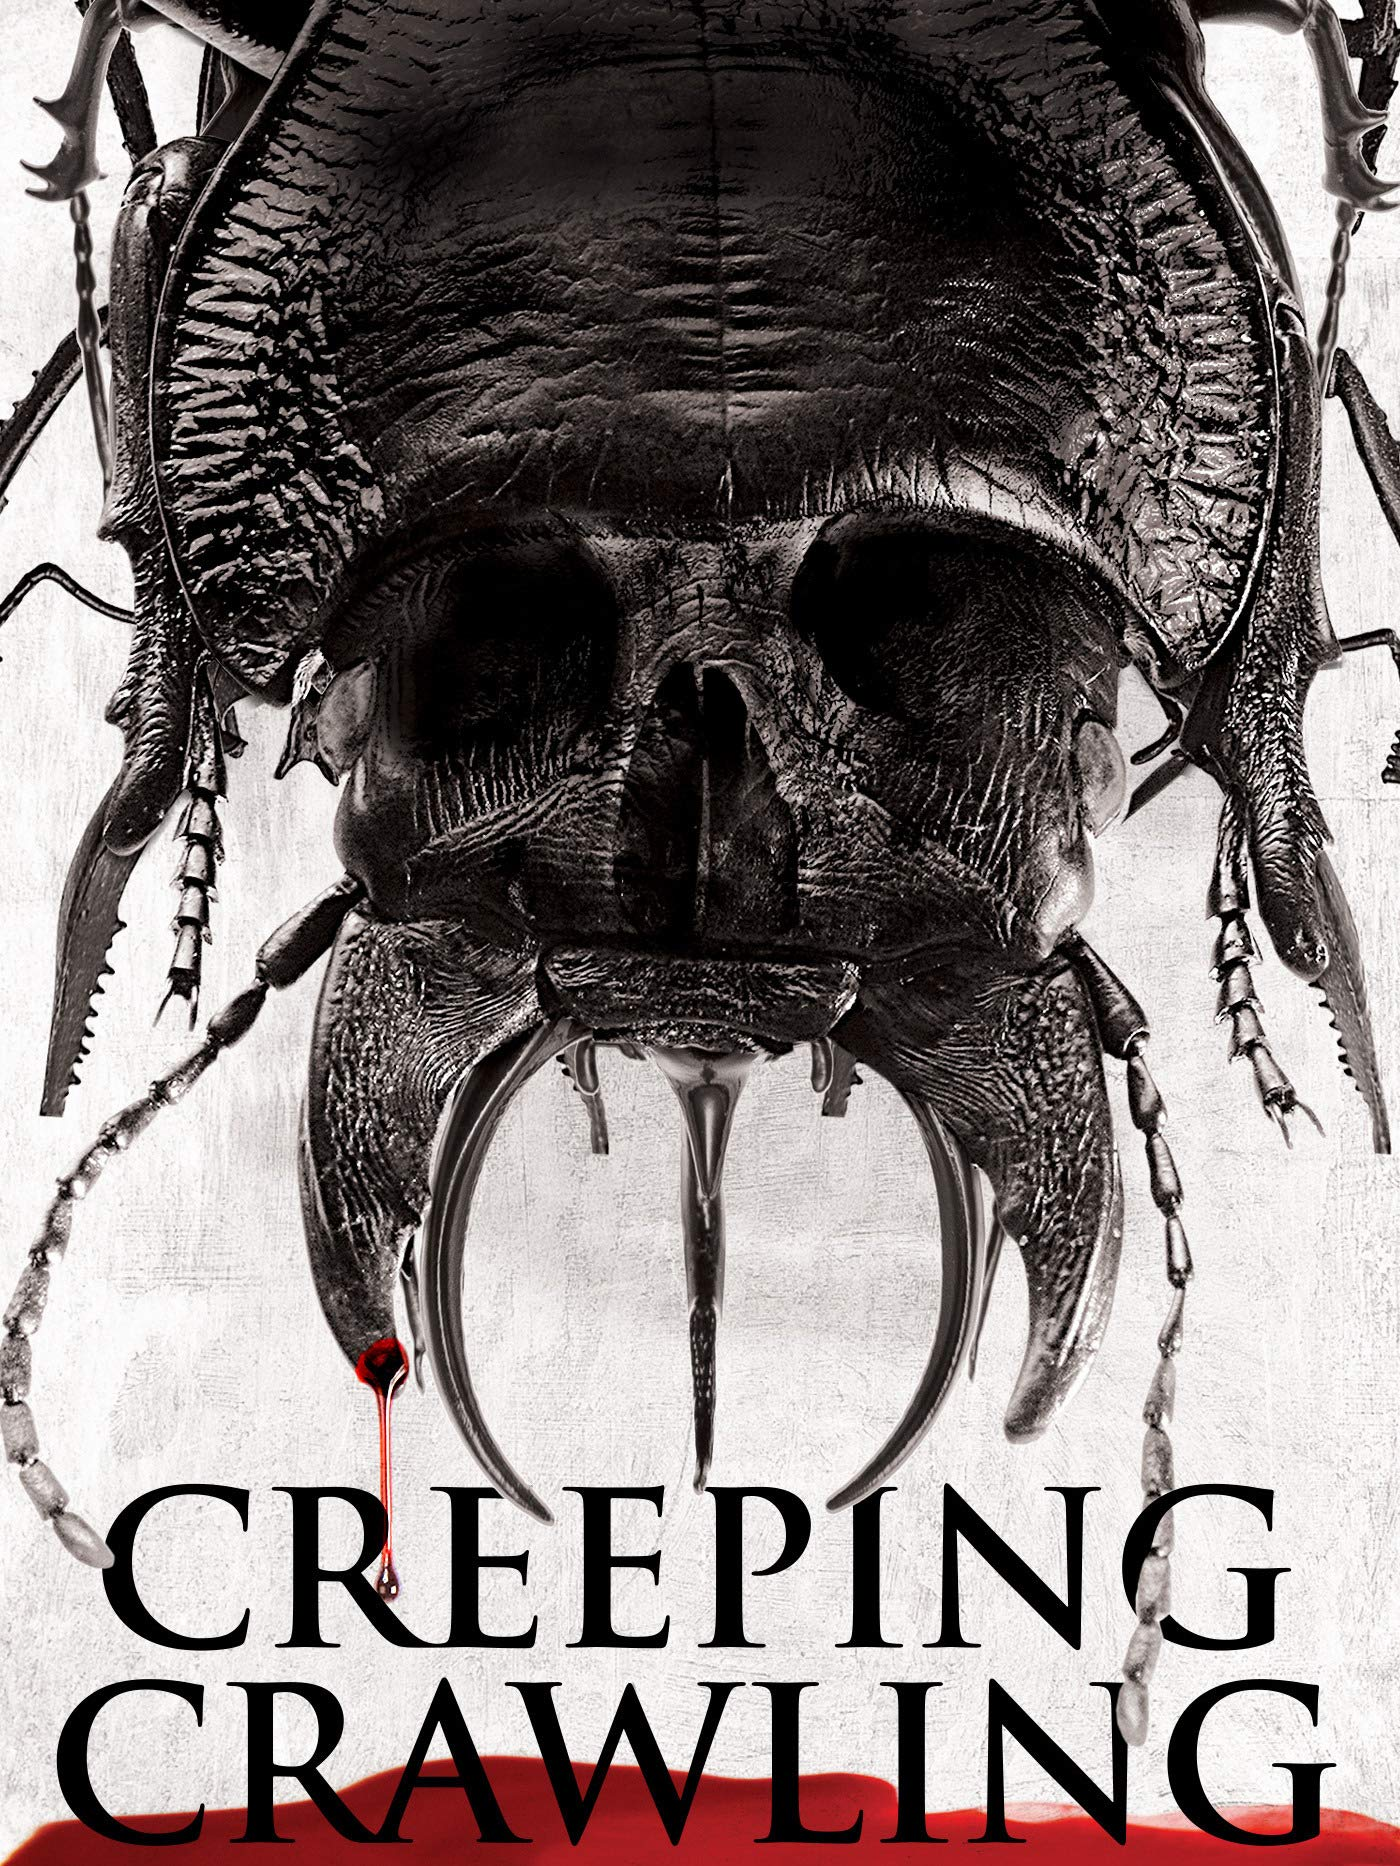 Creeping Crawling